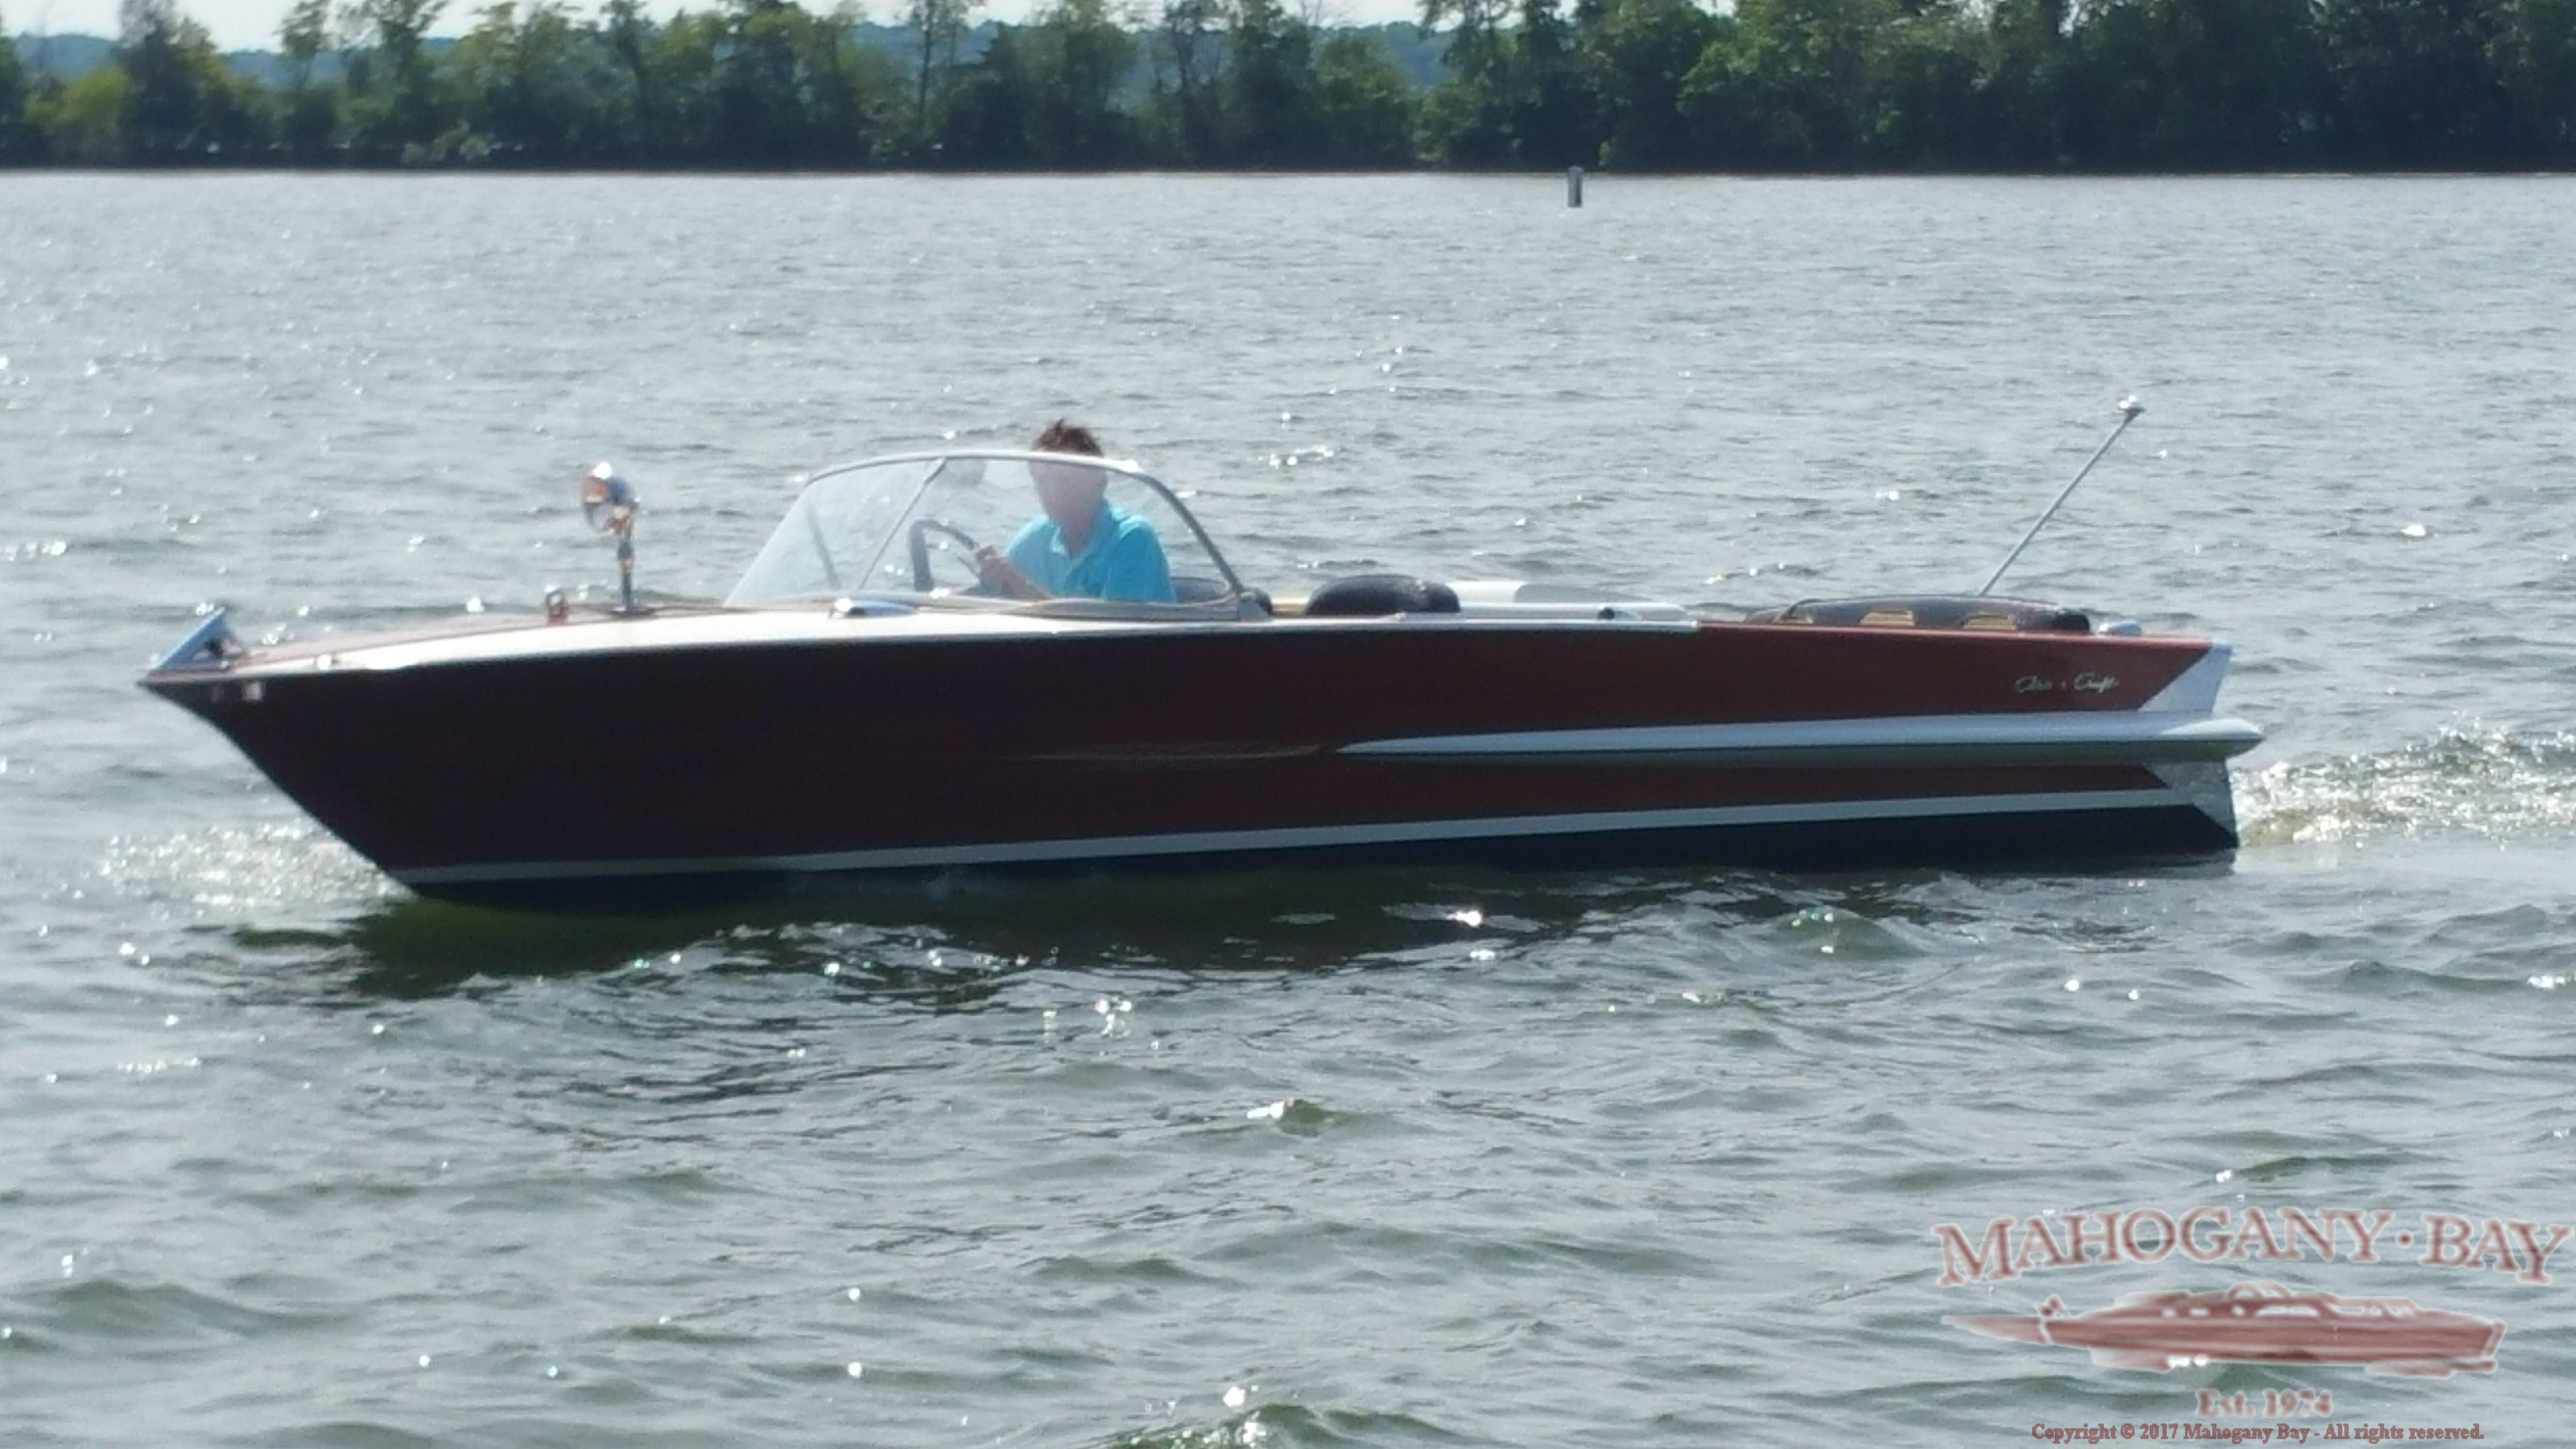 Chris craft classic wooden boats for sale vintage for Classic chris craft wooden boats